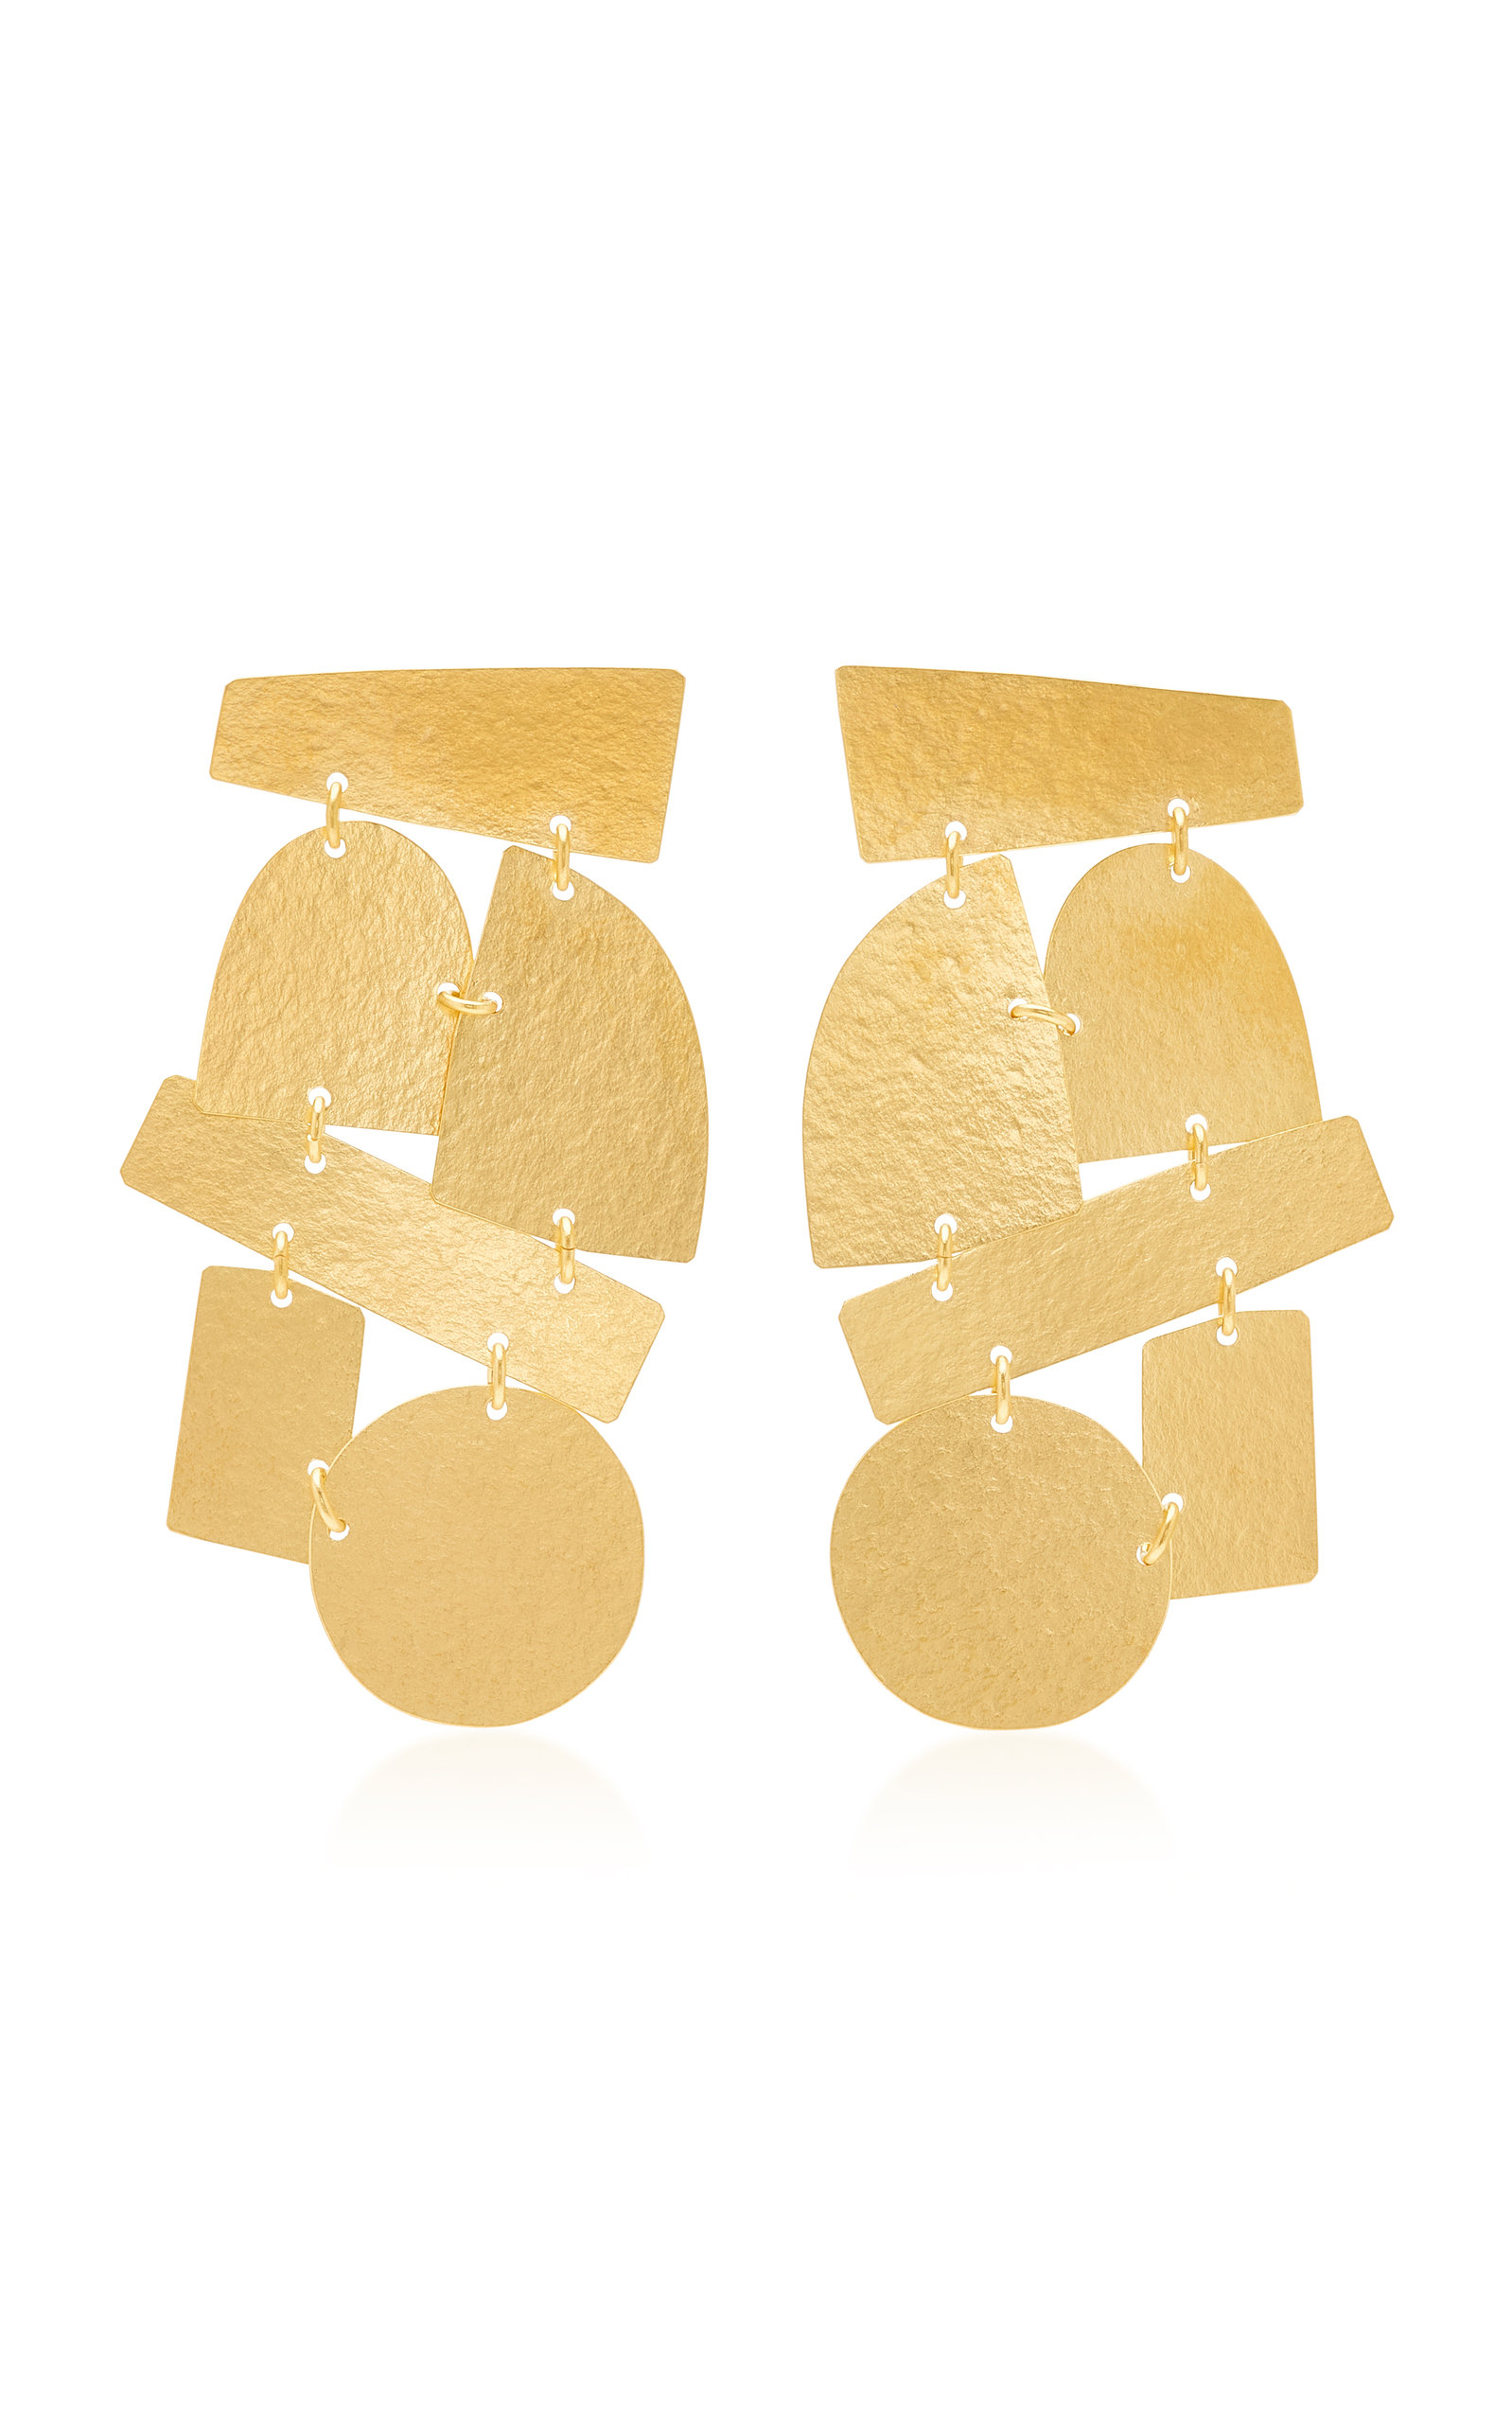 ANNIE COSTELLO BROWN PARADISO 18K GOLD-PLATED EARRINGS